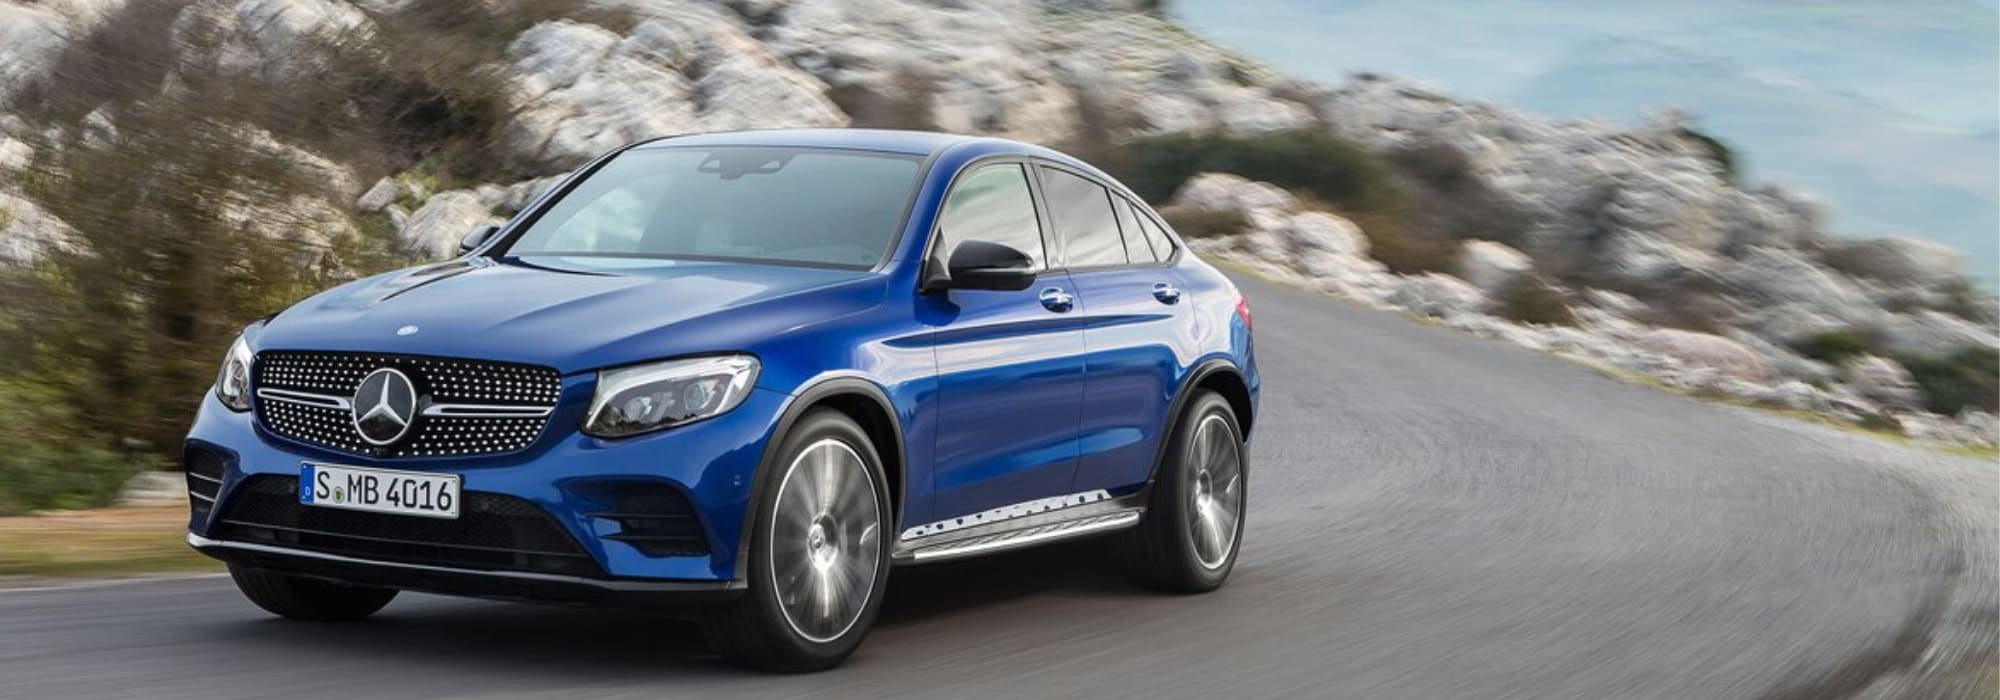 Used Mercedes-Benz Cars for Sale in Colorado Springs ...